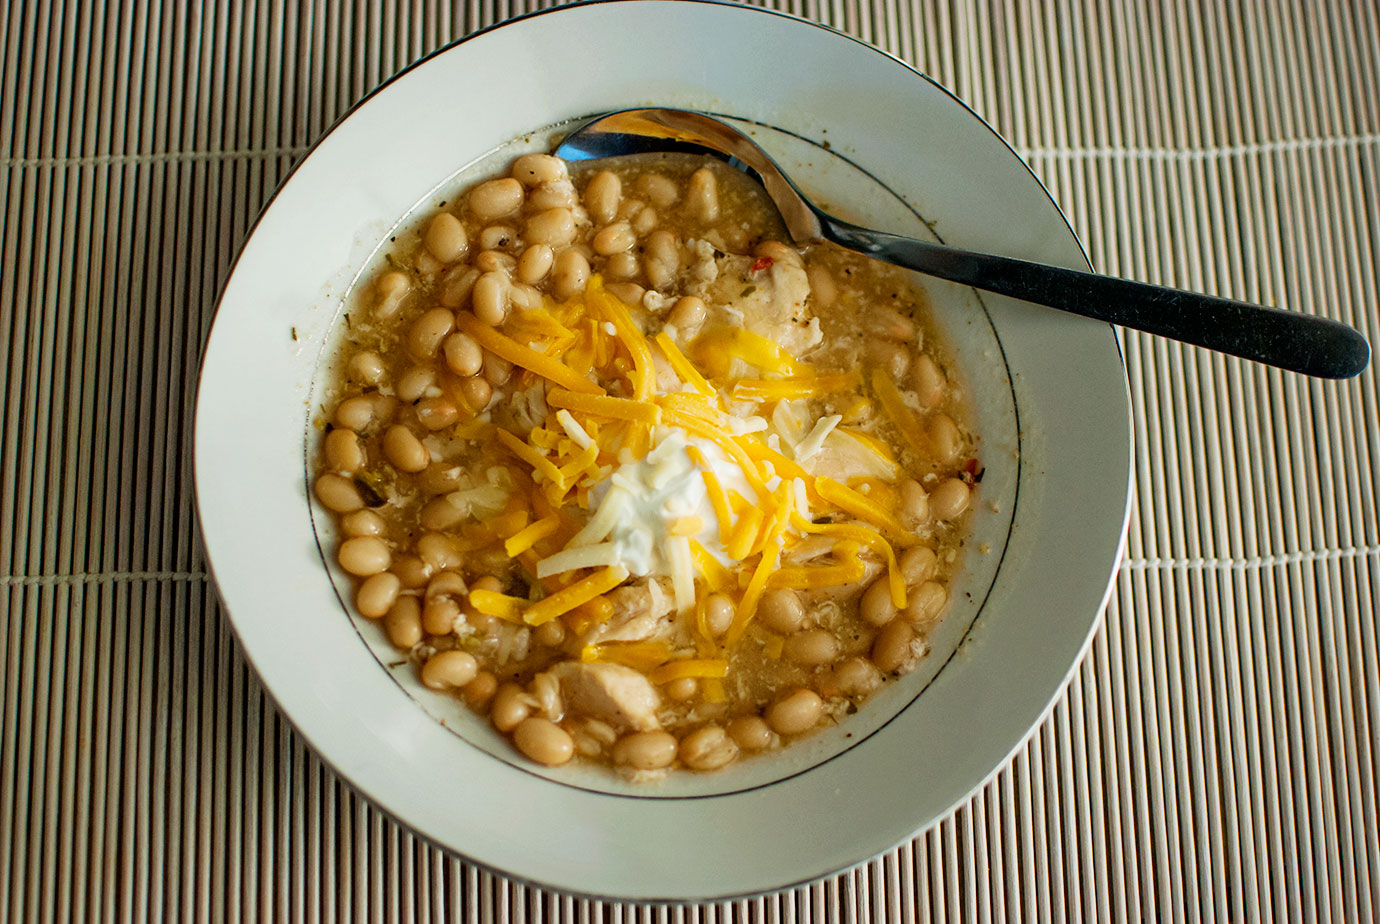 Bowl of White Bean Chicken Chili With Sour Cream and Shredded Cheese in a white bowl